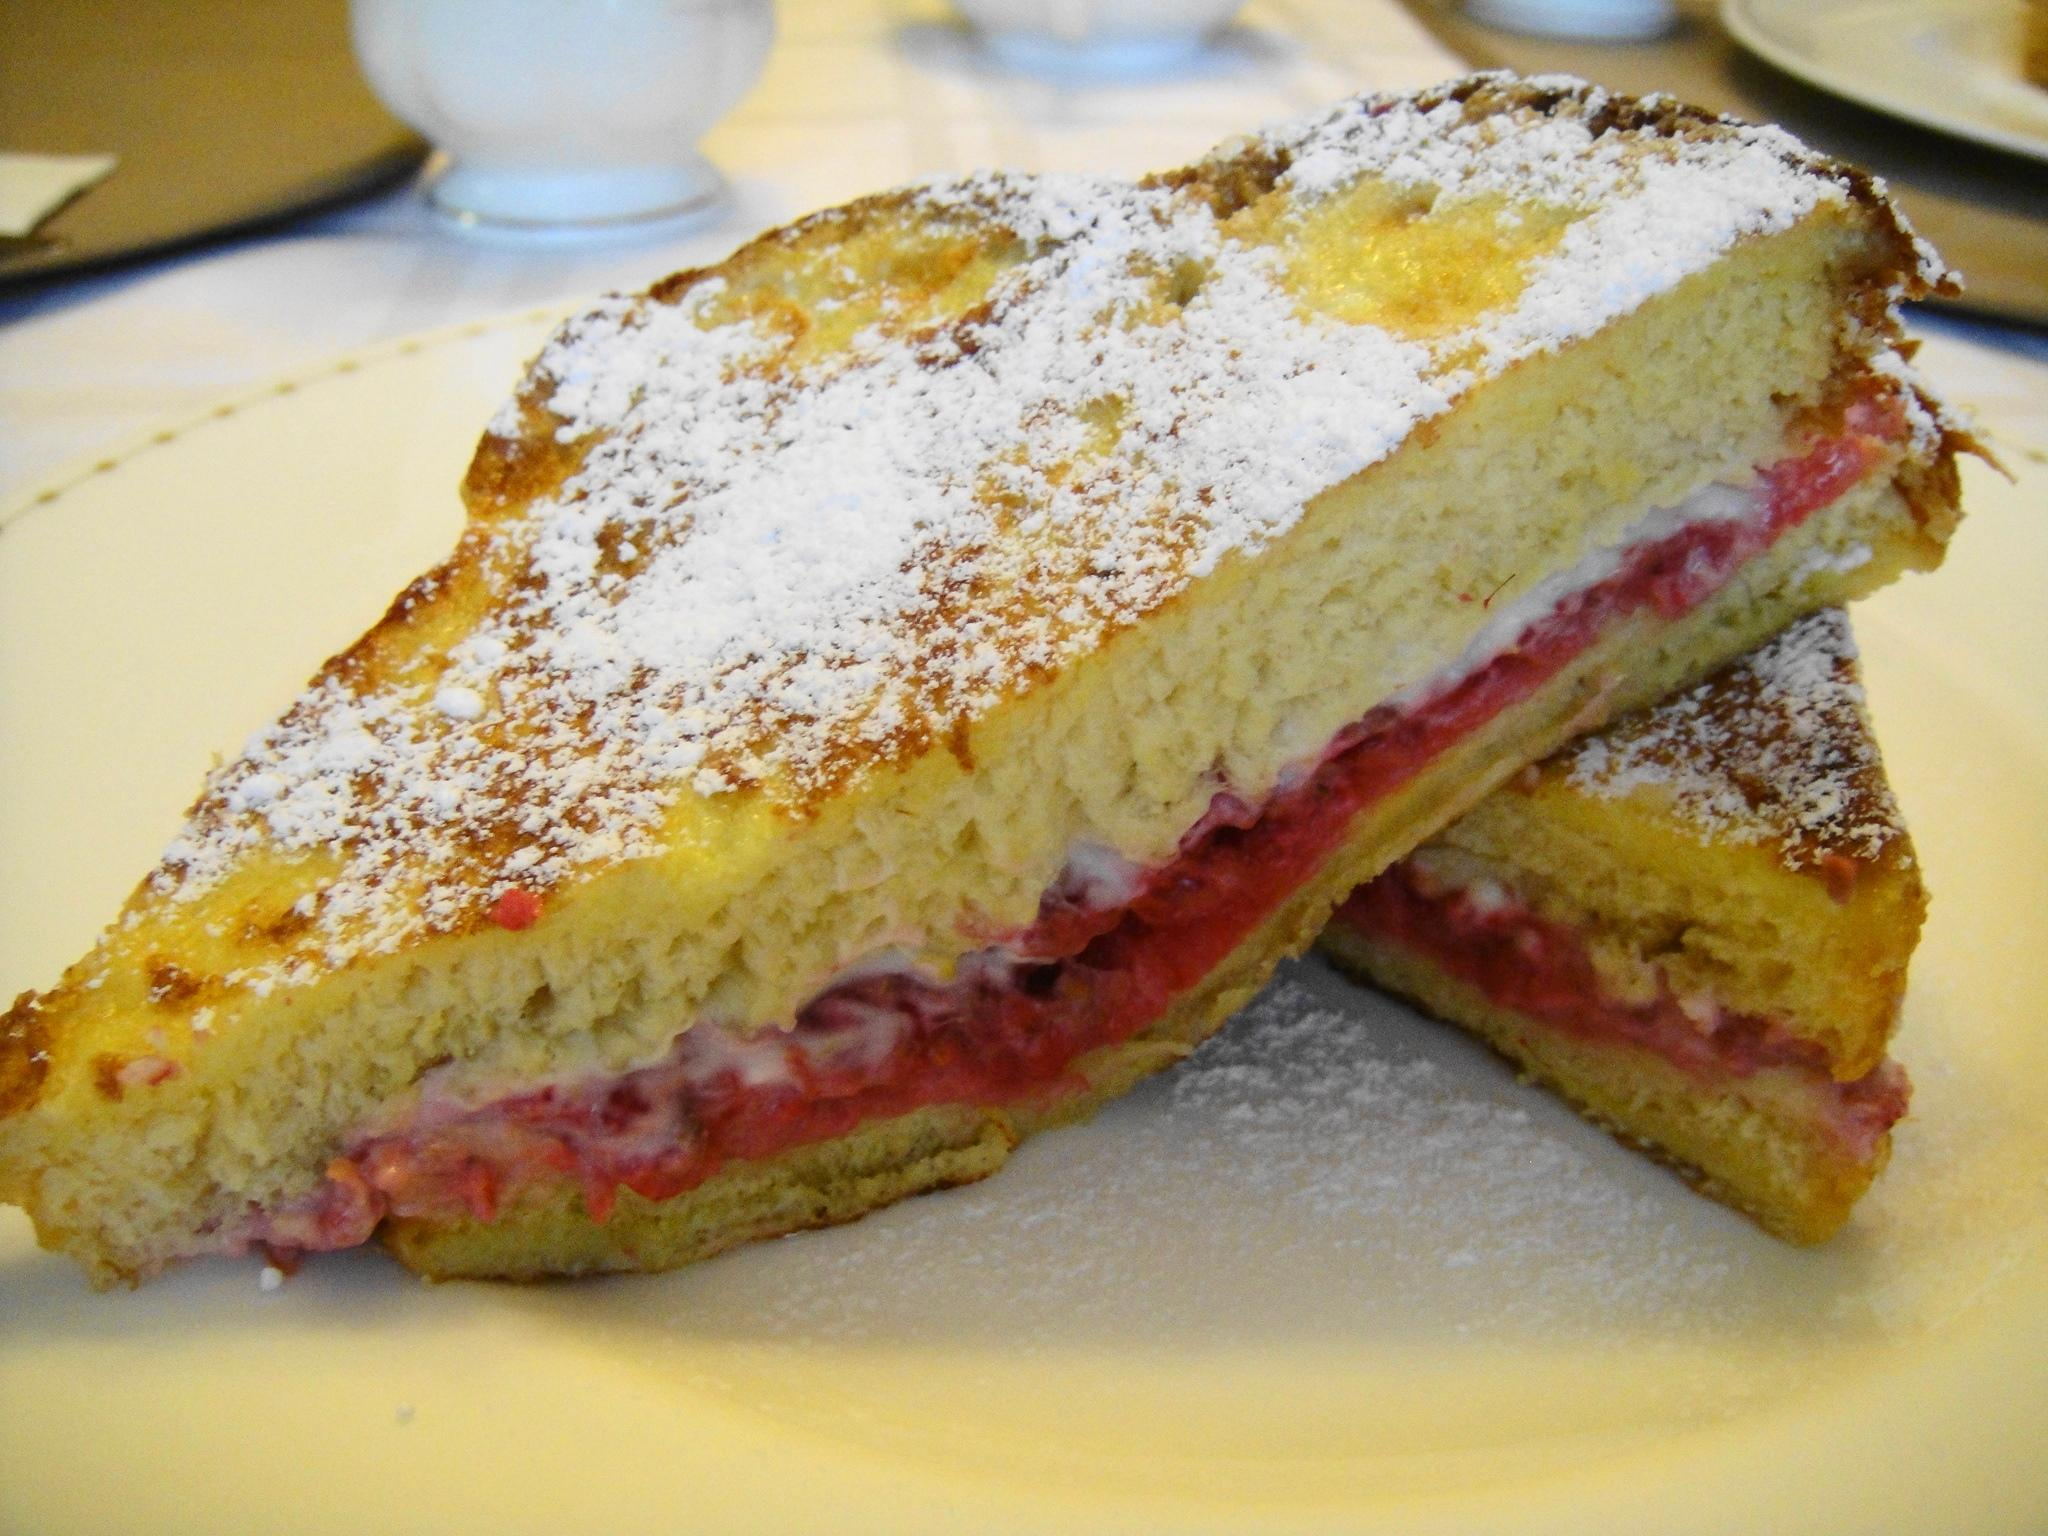 Berry stuffed french toast freshness french toast 2 ccuart Images